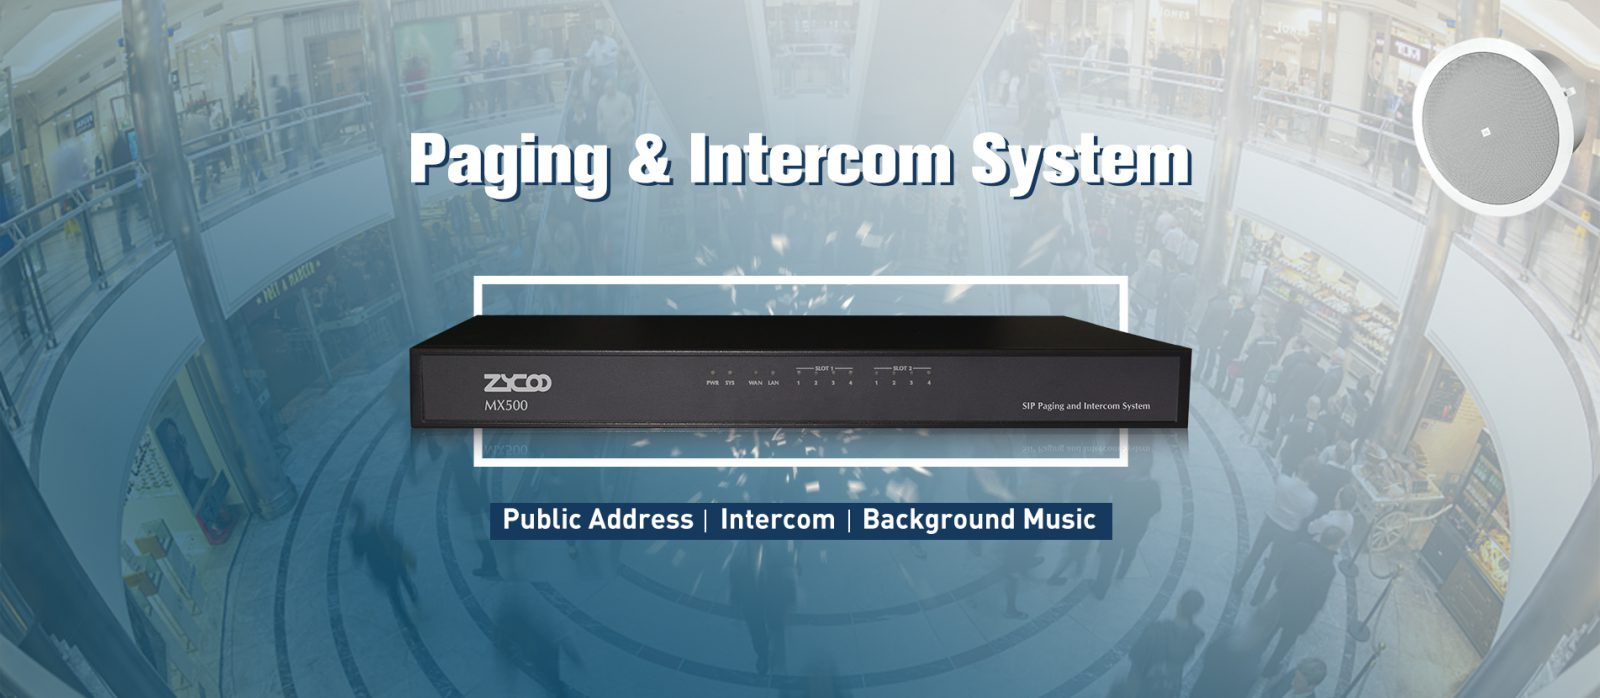 Zycoo SIP Paging & Intercom system